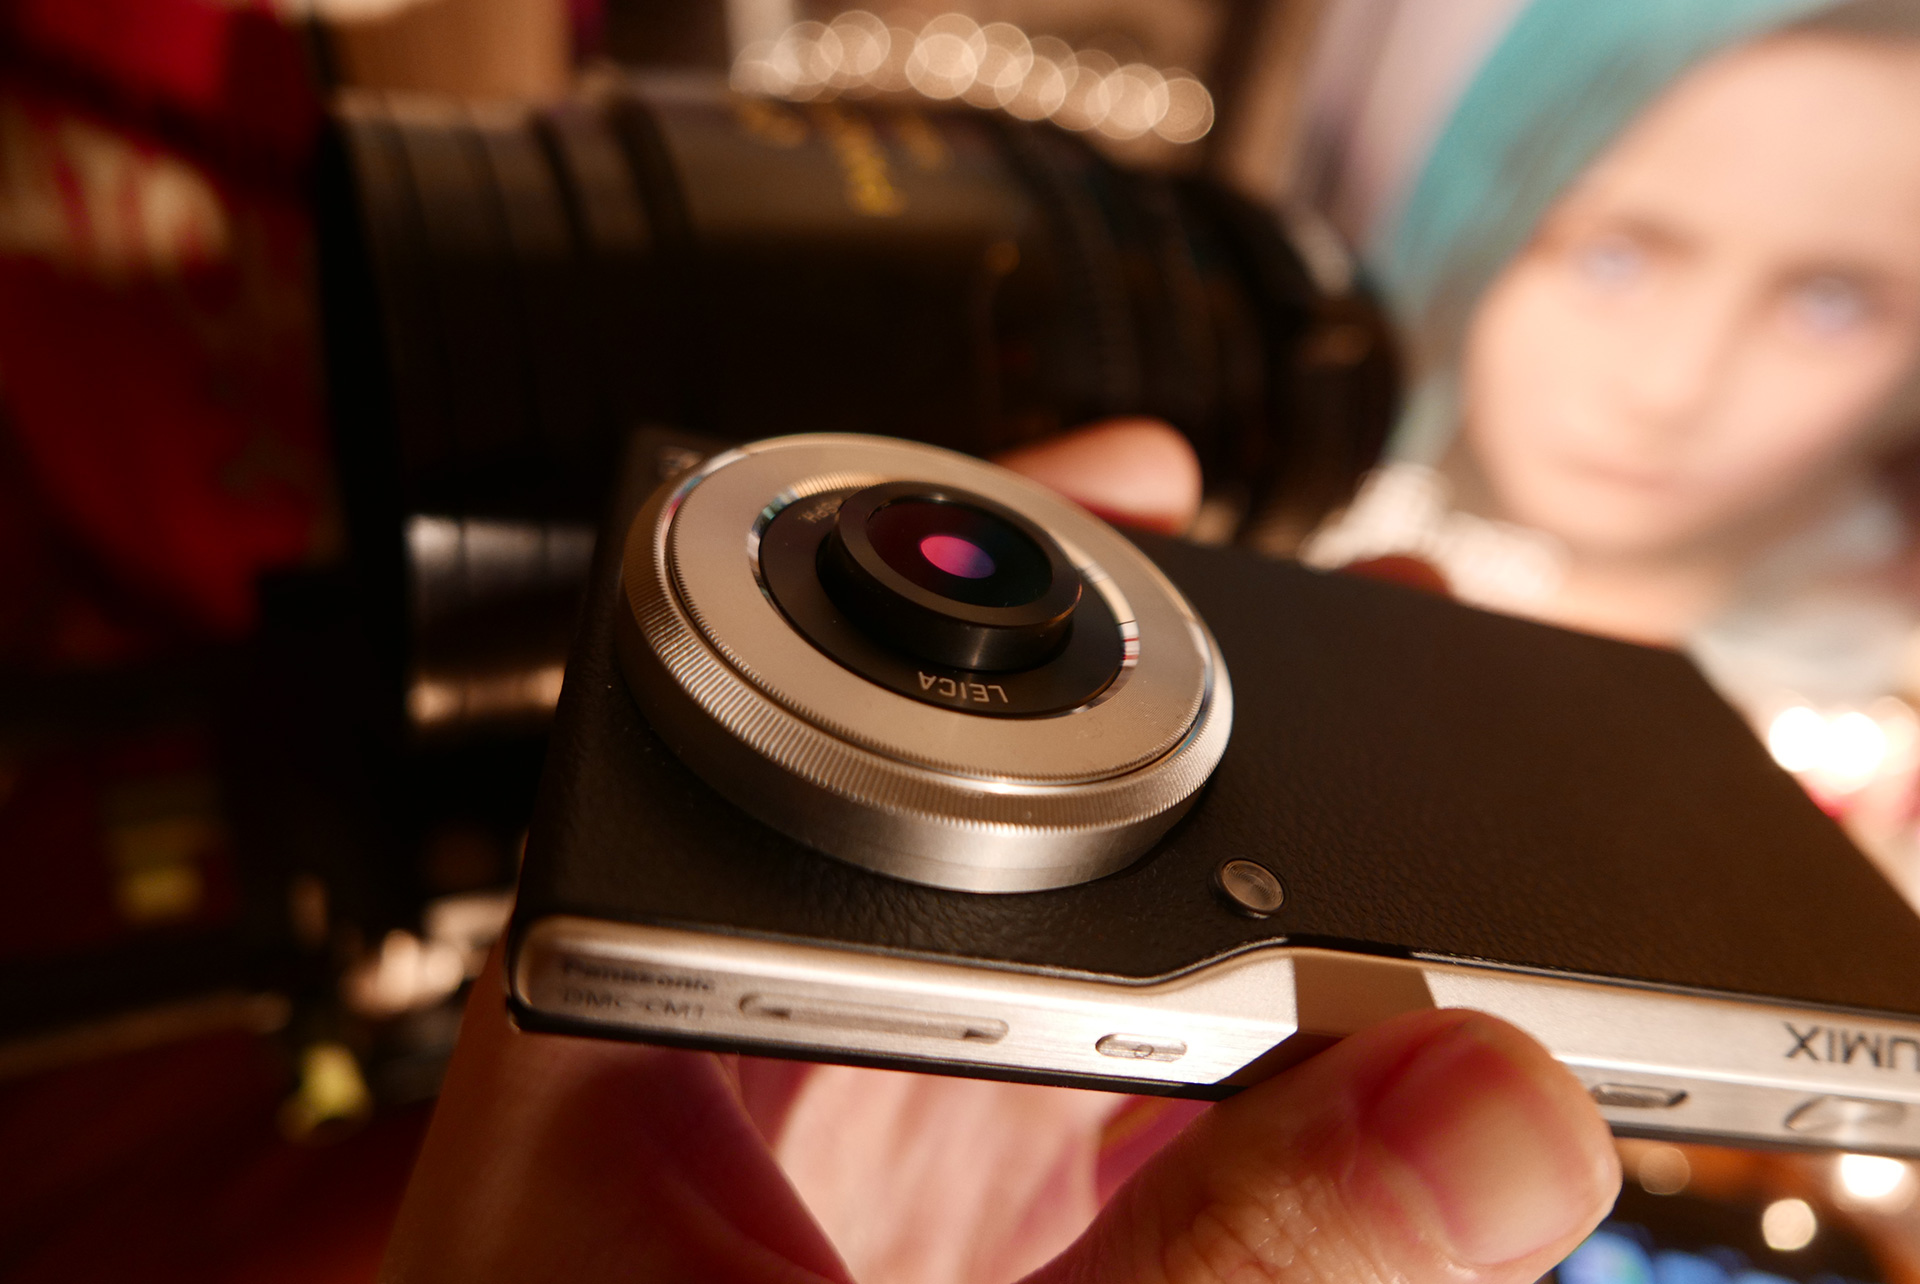 The Leica lens on the CM1 extends when in use